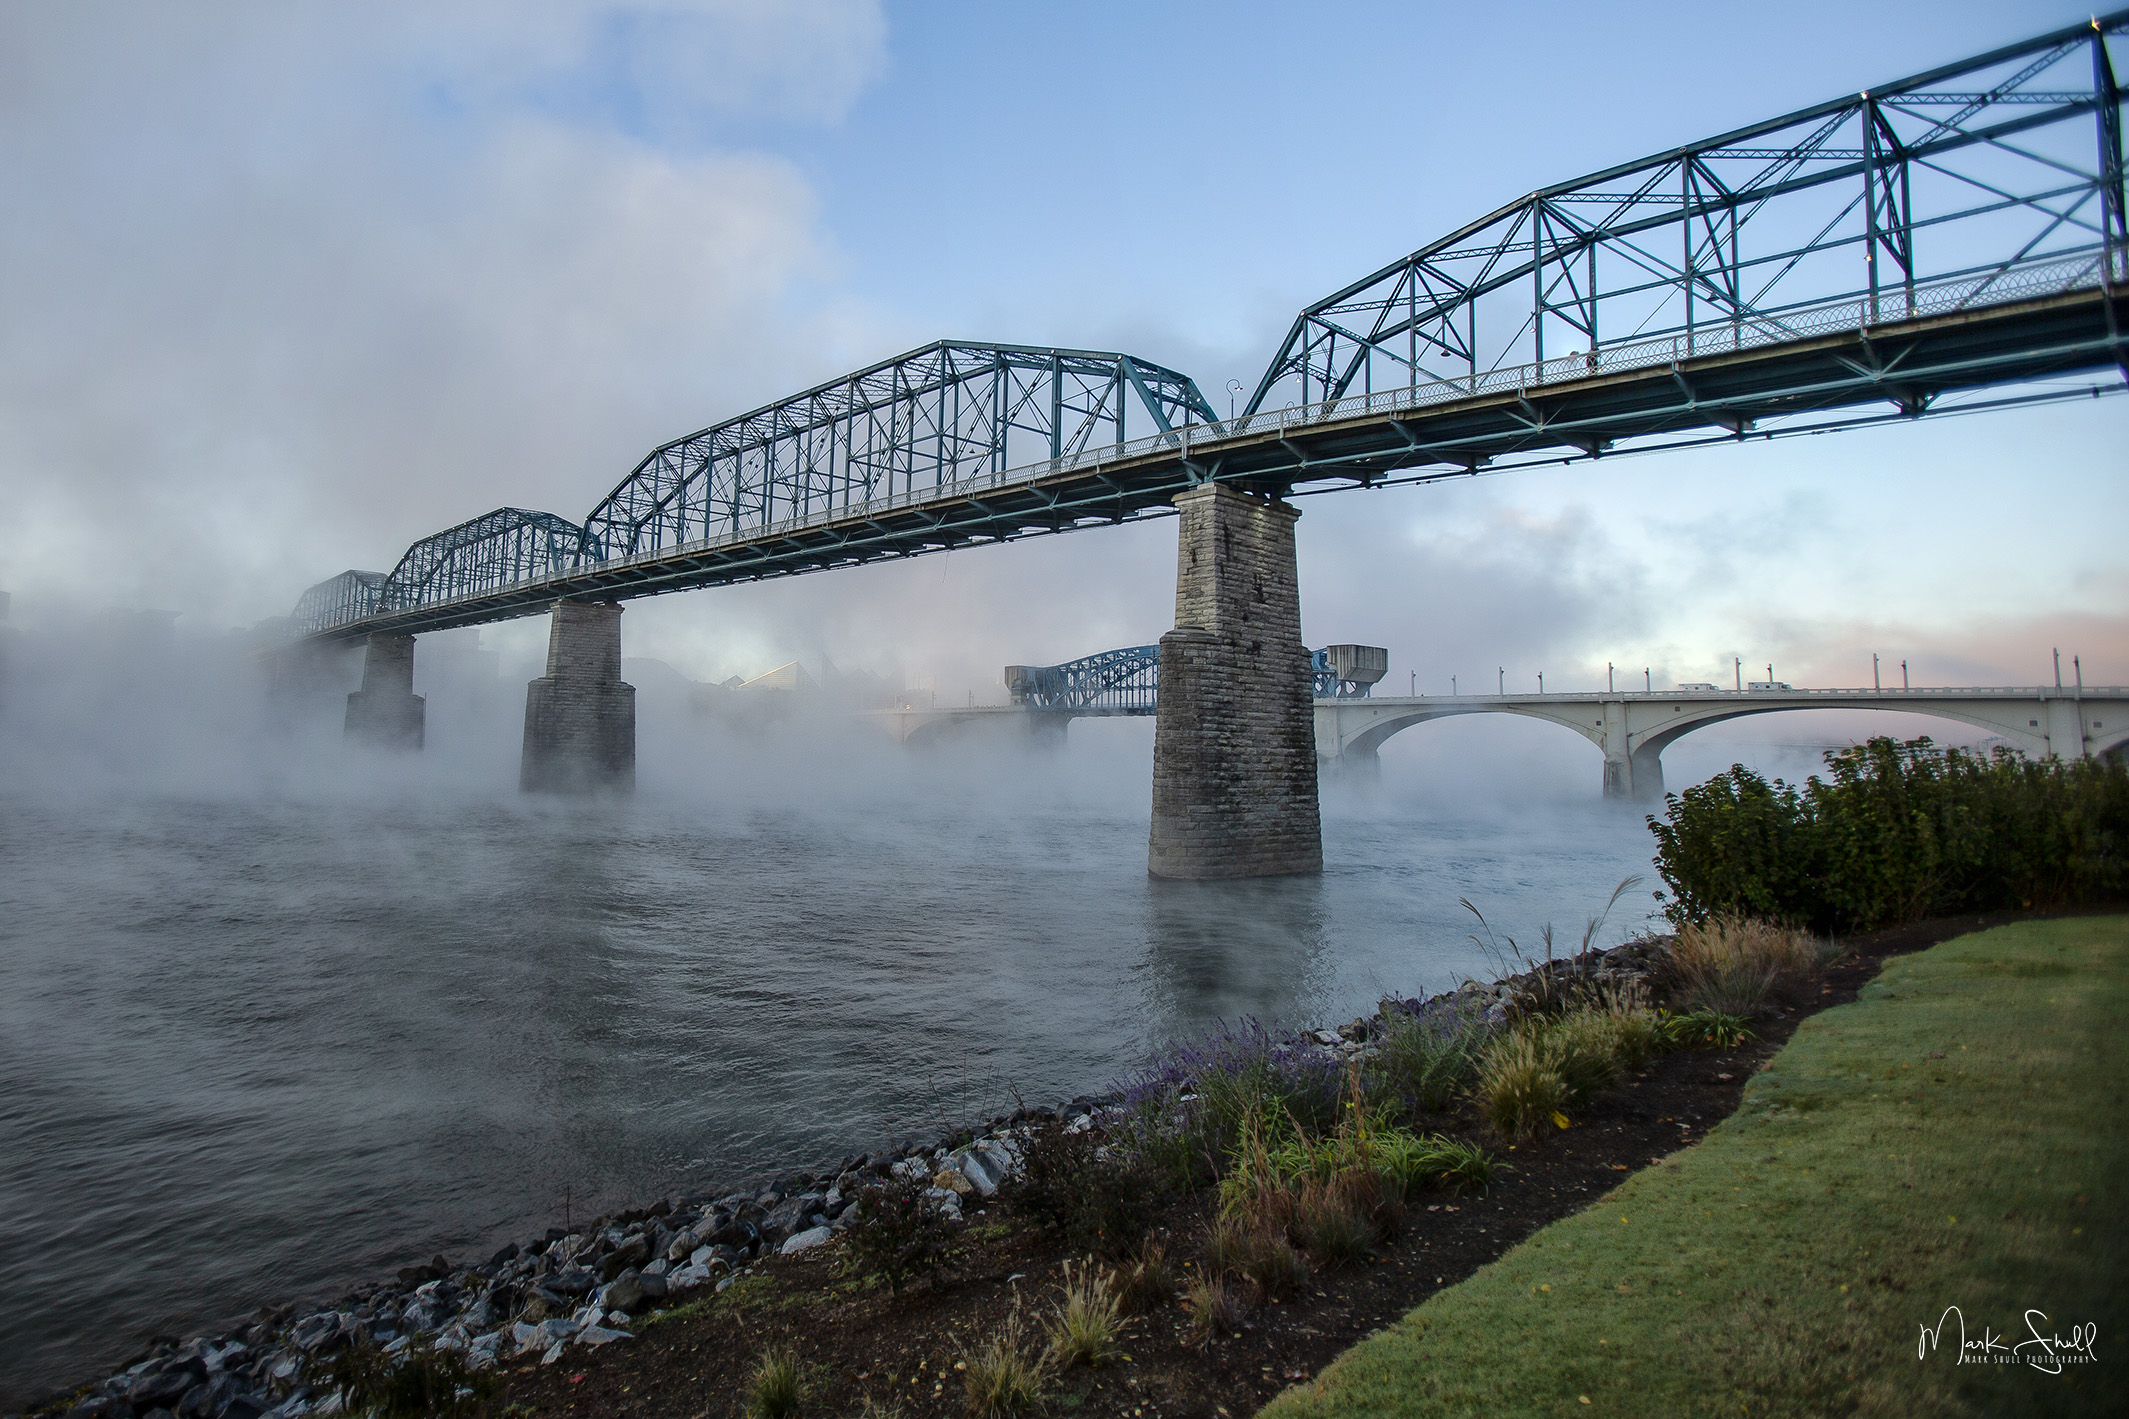 Chattanooga Early Fog